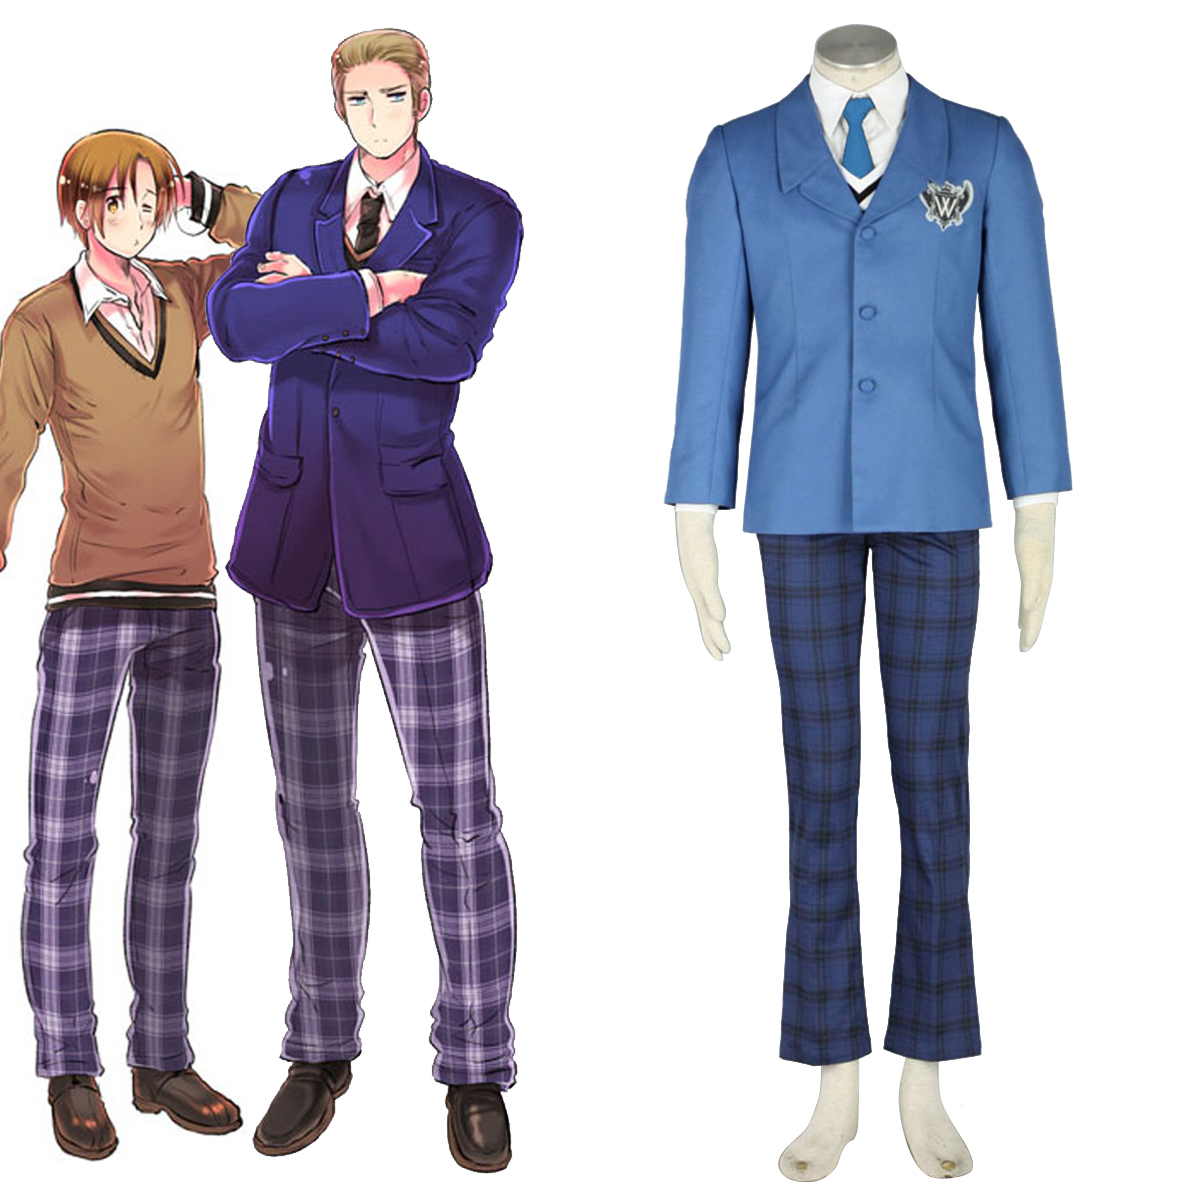 Axis Powers Hetalia Winter Male School Uniform 1 Anime Cosplay Costumes Outfit